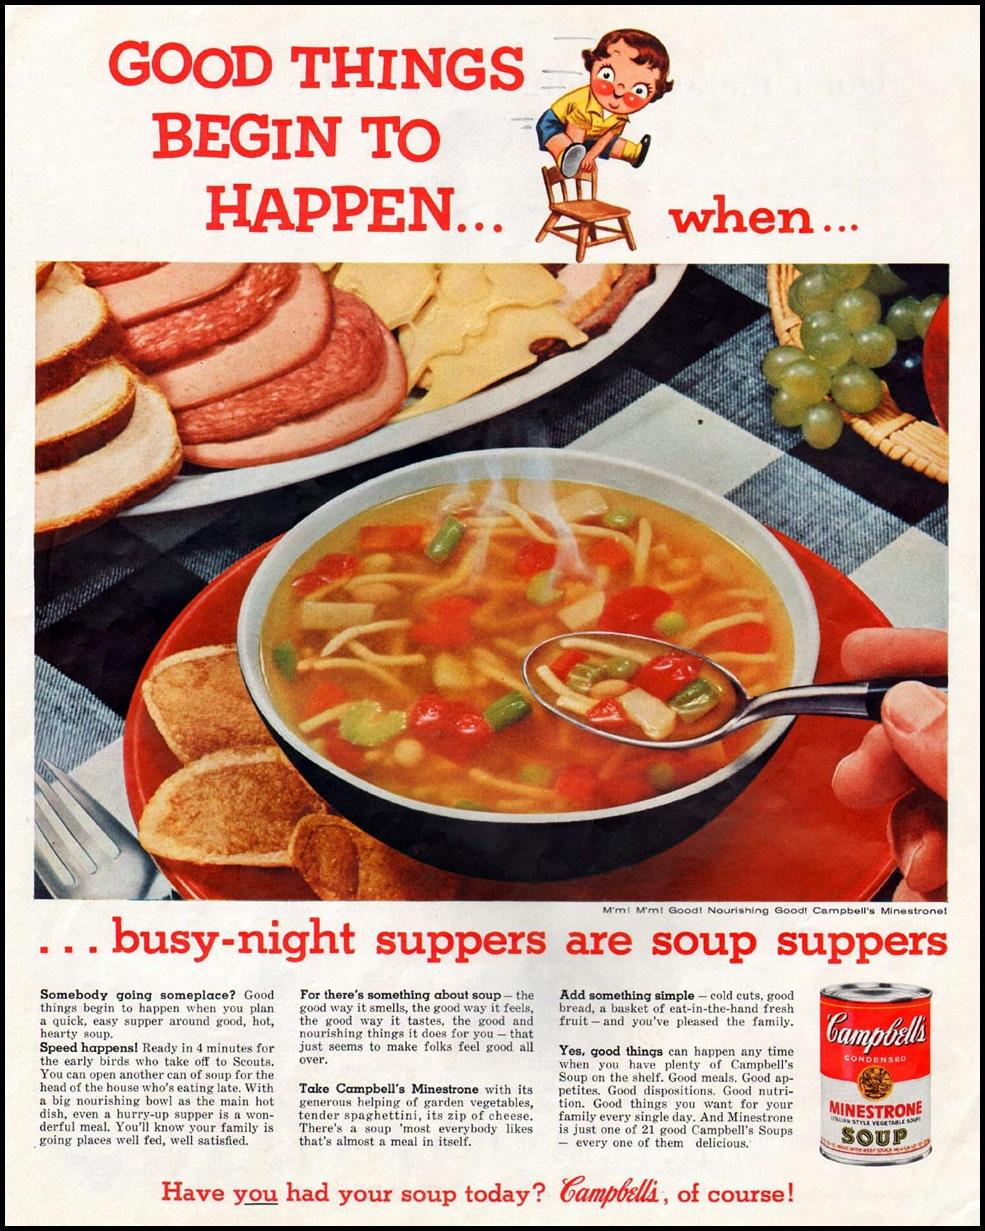 CAMPBELL'S SOUPS SATURDAY EVENING POST 06/04/1960 p. 43